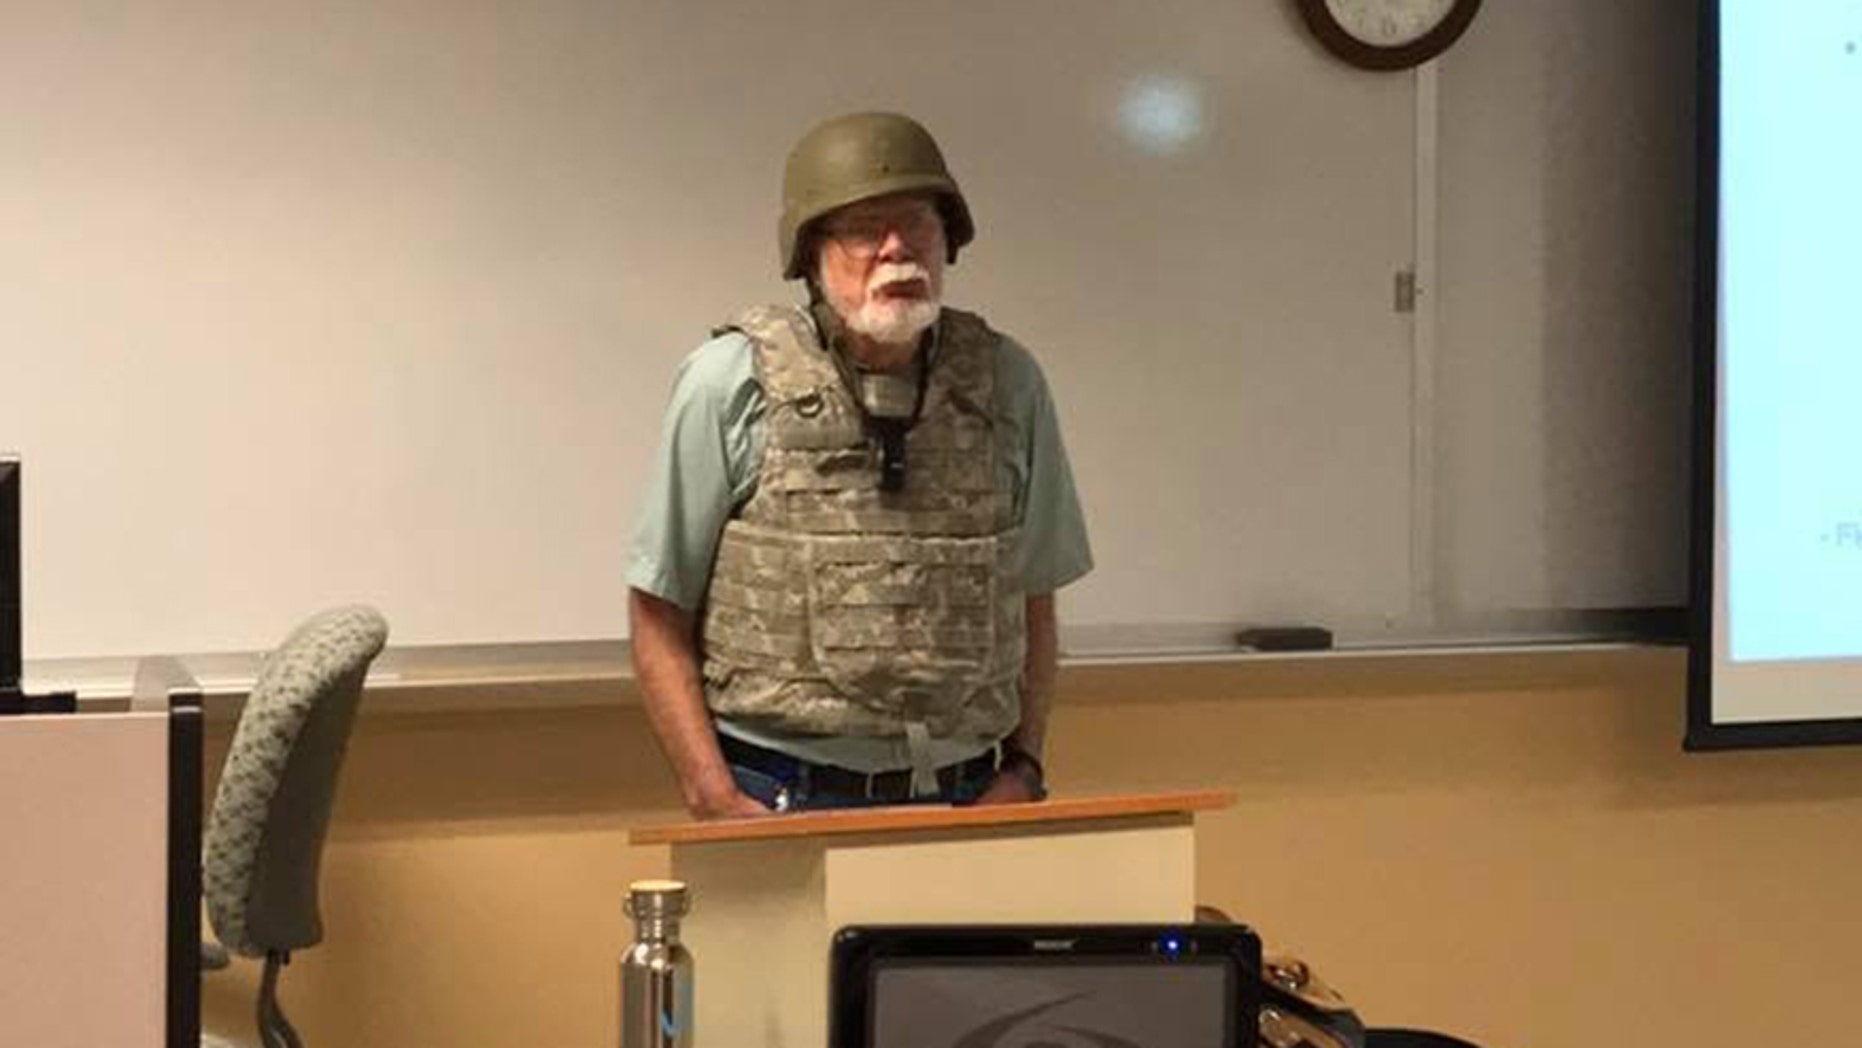 Professor Charles K. Smith of San Antonio College wore full combat gear to protest Texas' campus carry law.